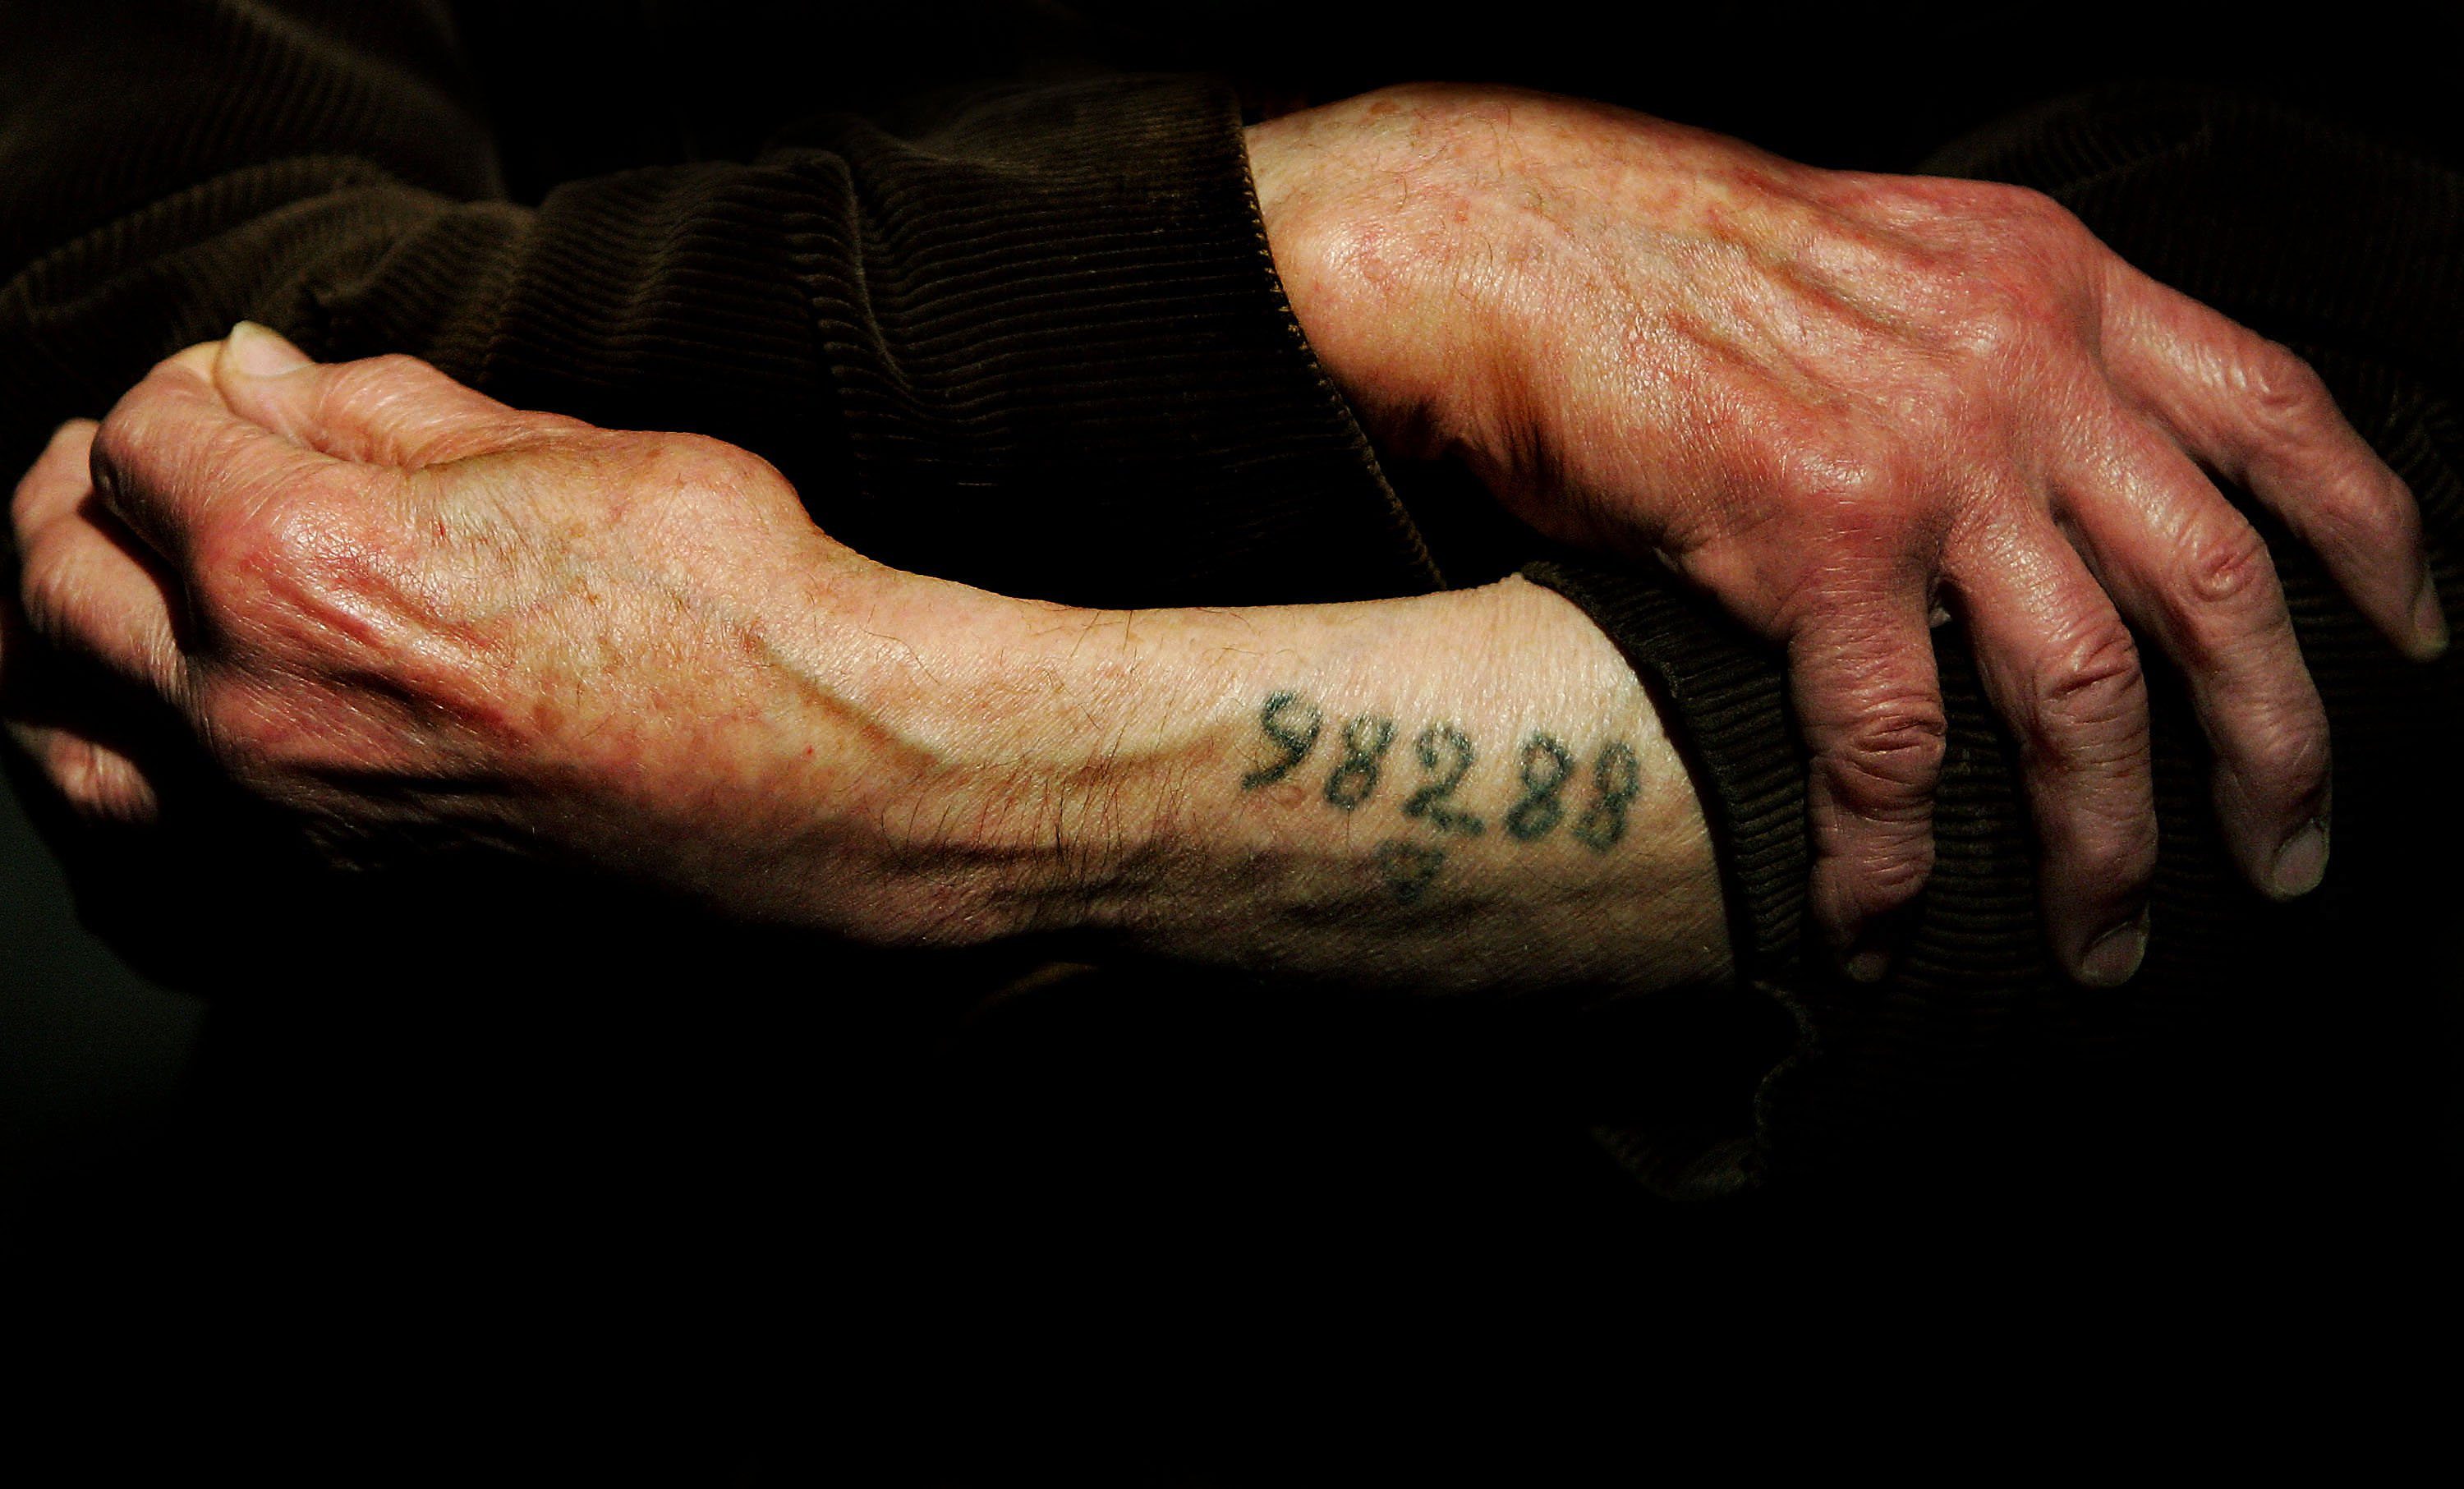 Auschwitz survivor Mr. Leon Greenman, prison number 98288,